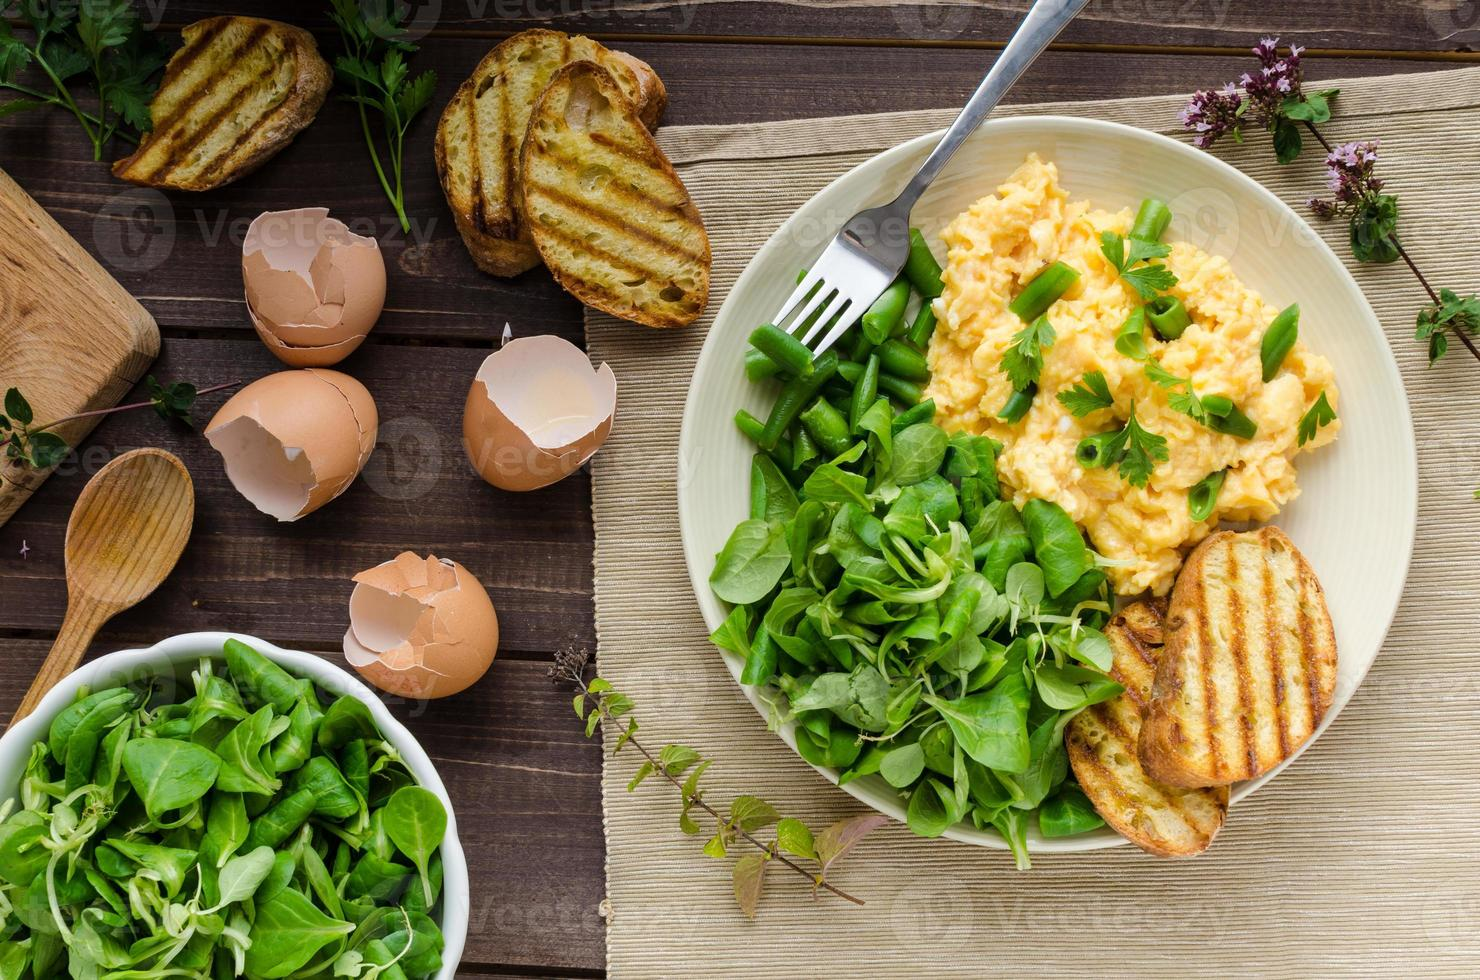 Scrambled eggs with salad photo